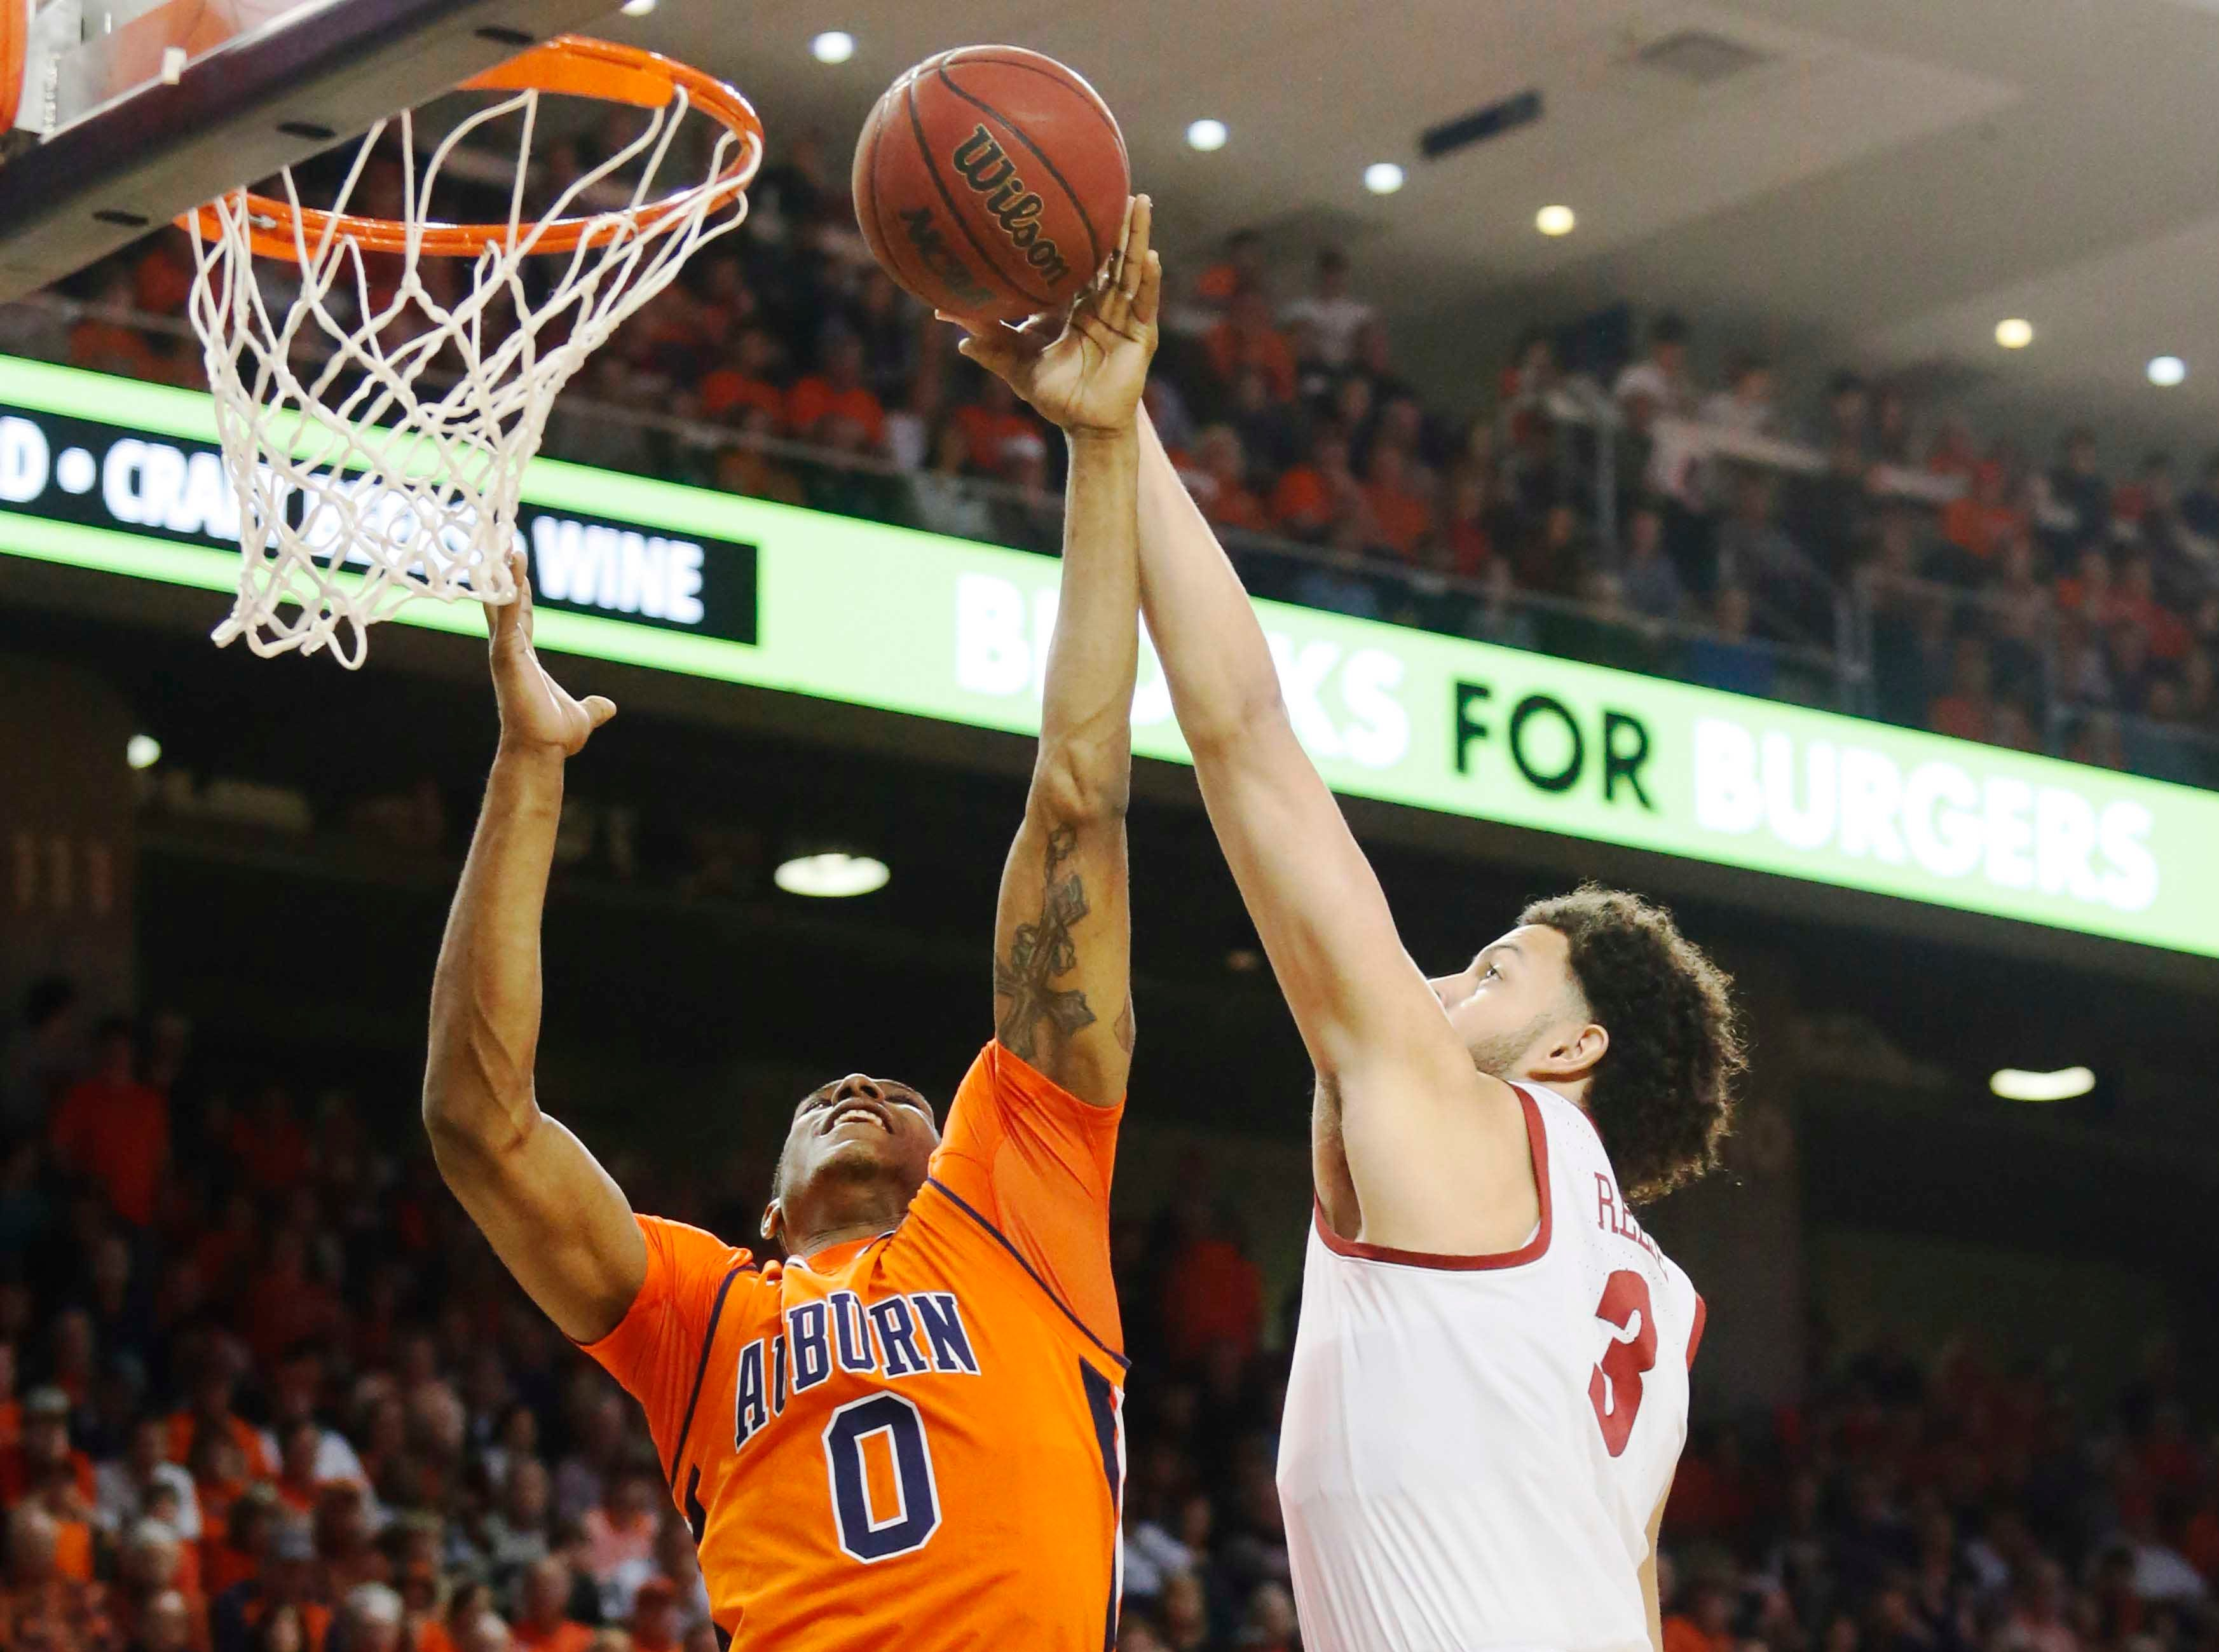 Feb 2, 2019; Auburn, AL, USA; Alabama Crimson Tide forward Alex Reese (3) battles with Auburn Tigers forward Horace Spencer (0) for a rebound during the first half at Auburn Arena. Mandatory Credit: John Reed-USA TODAY Sports